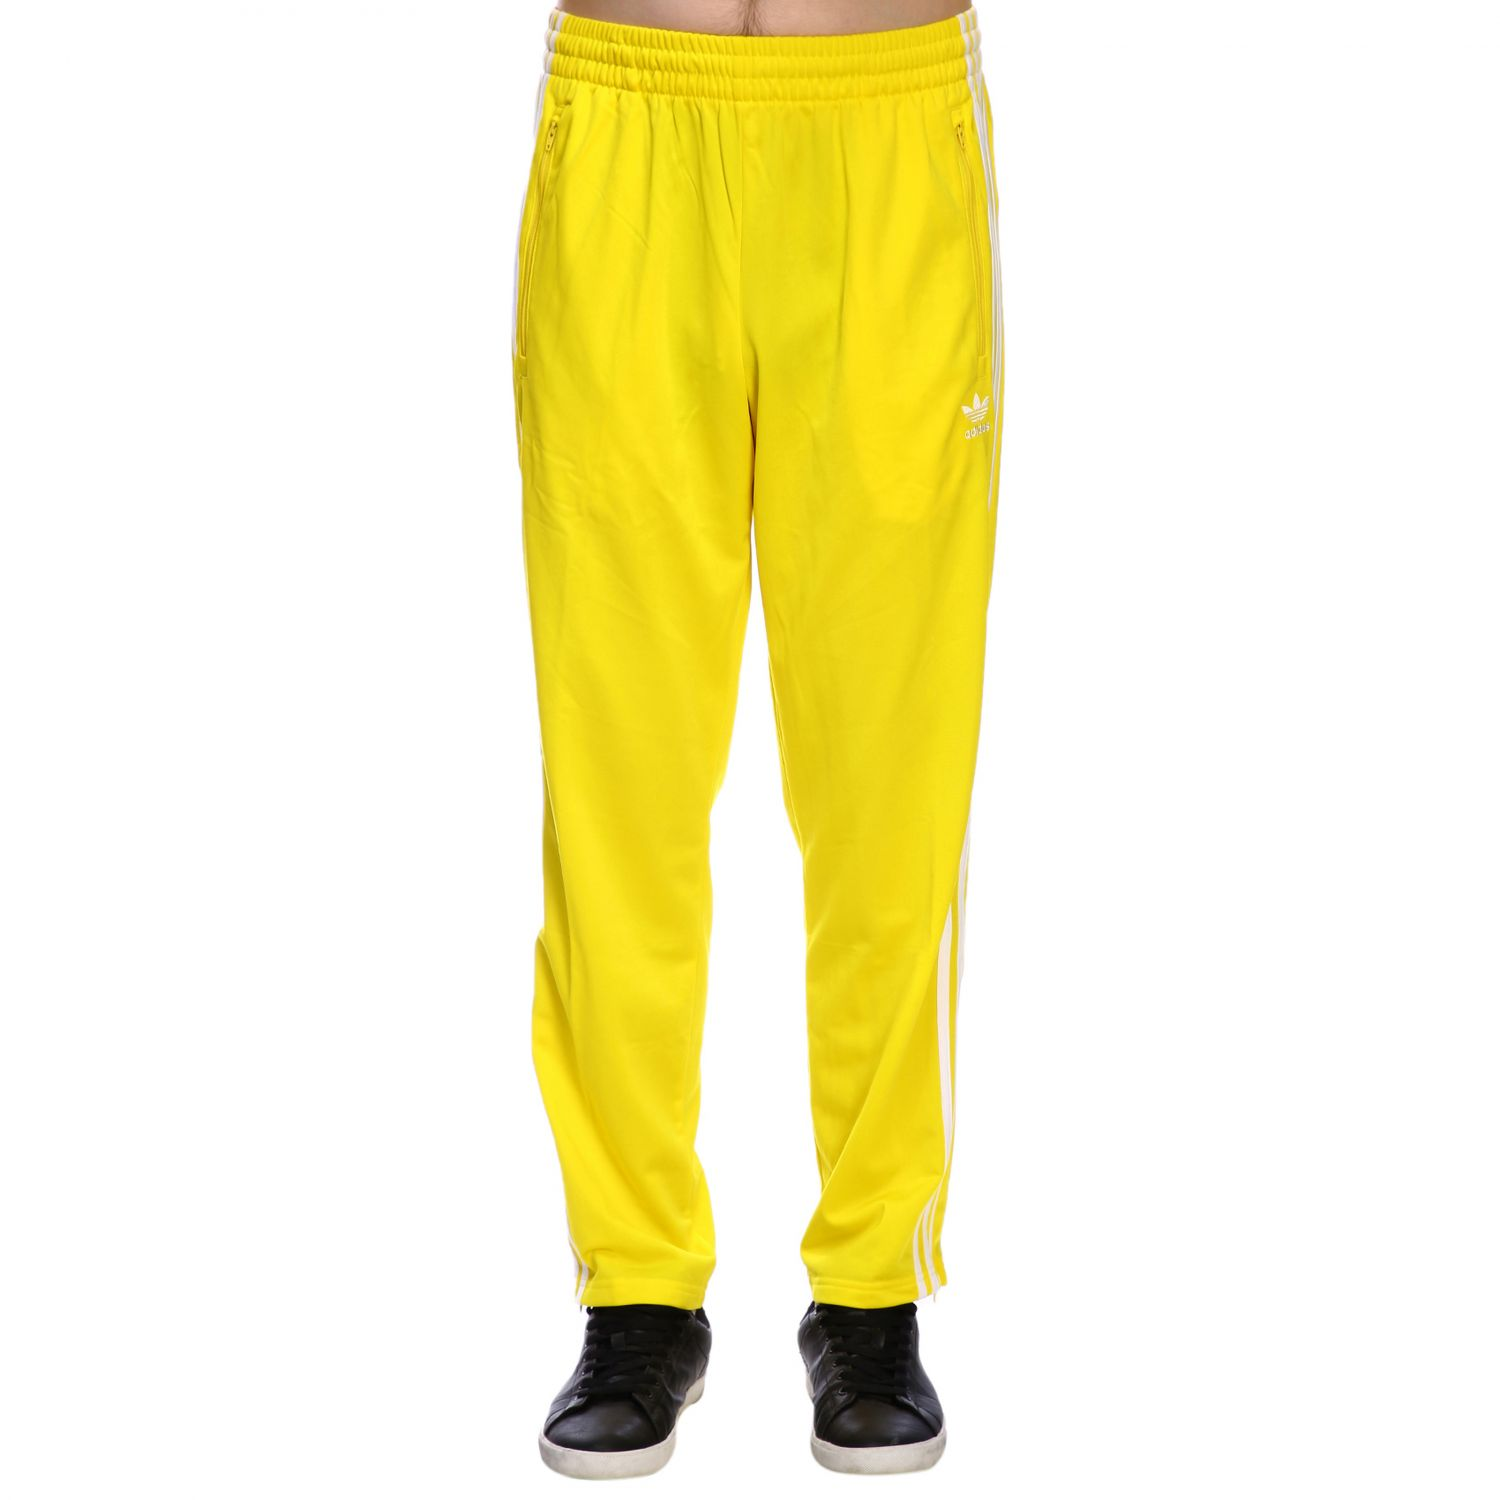 adidas pants yellow